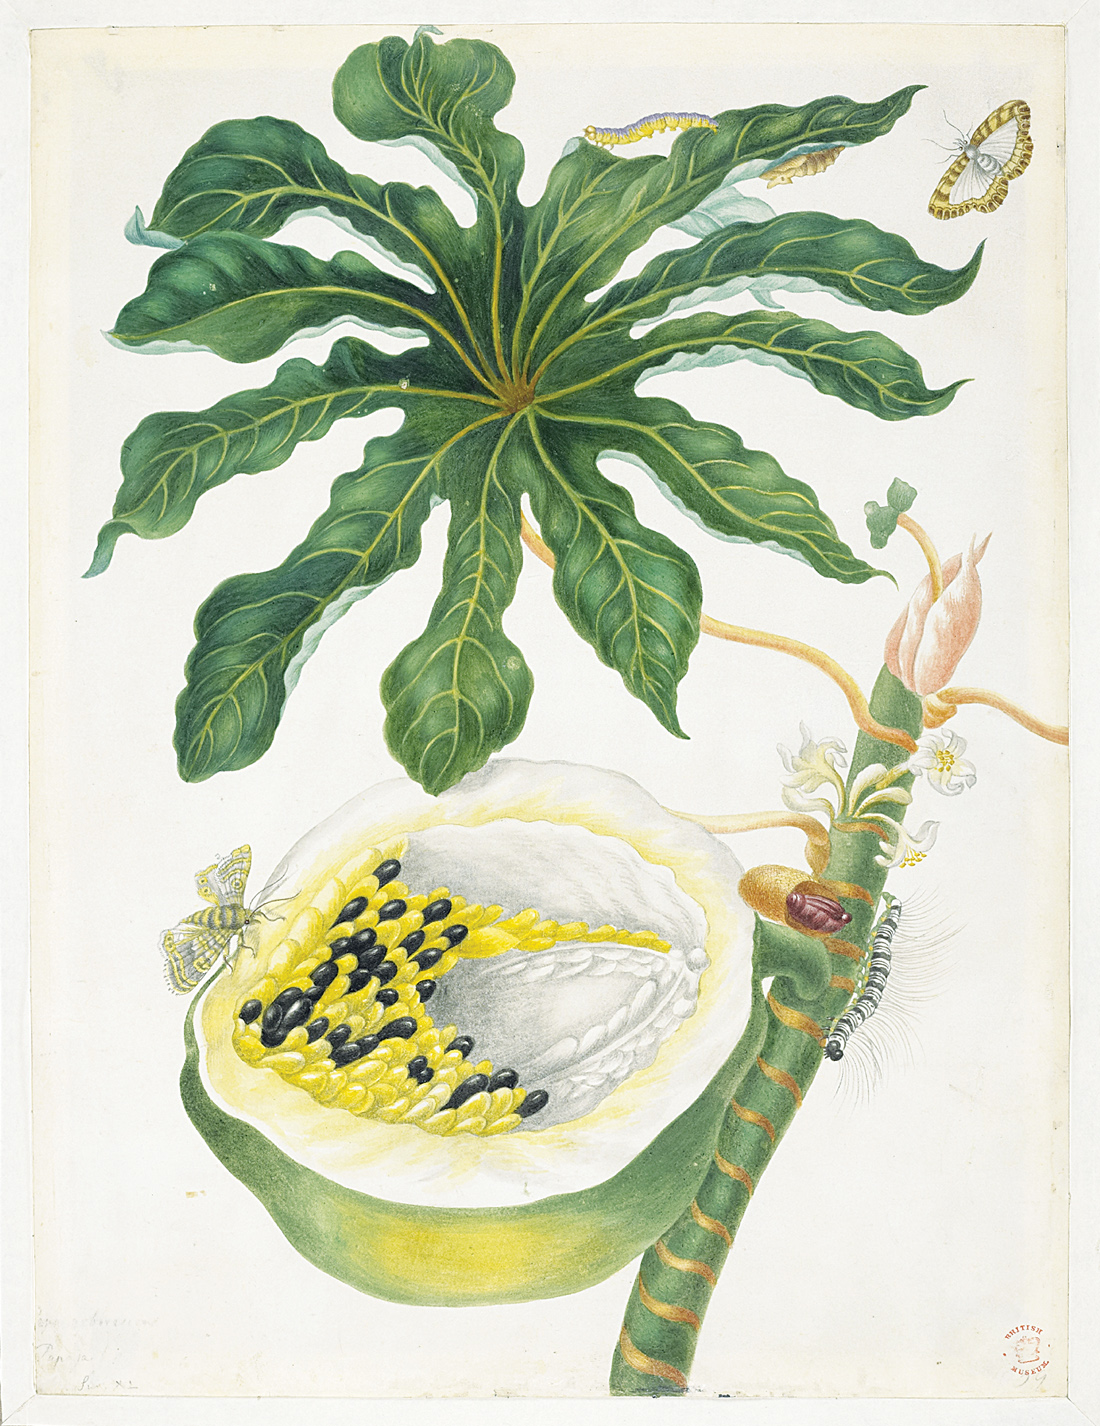 Papaya Bearing Fruit, by Maria Sybille Merian (1647–1717). © 2005, Linda Hall Library of Science, Engineering and Technology, Kansas City, Missouri.